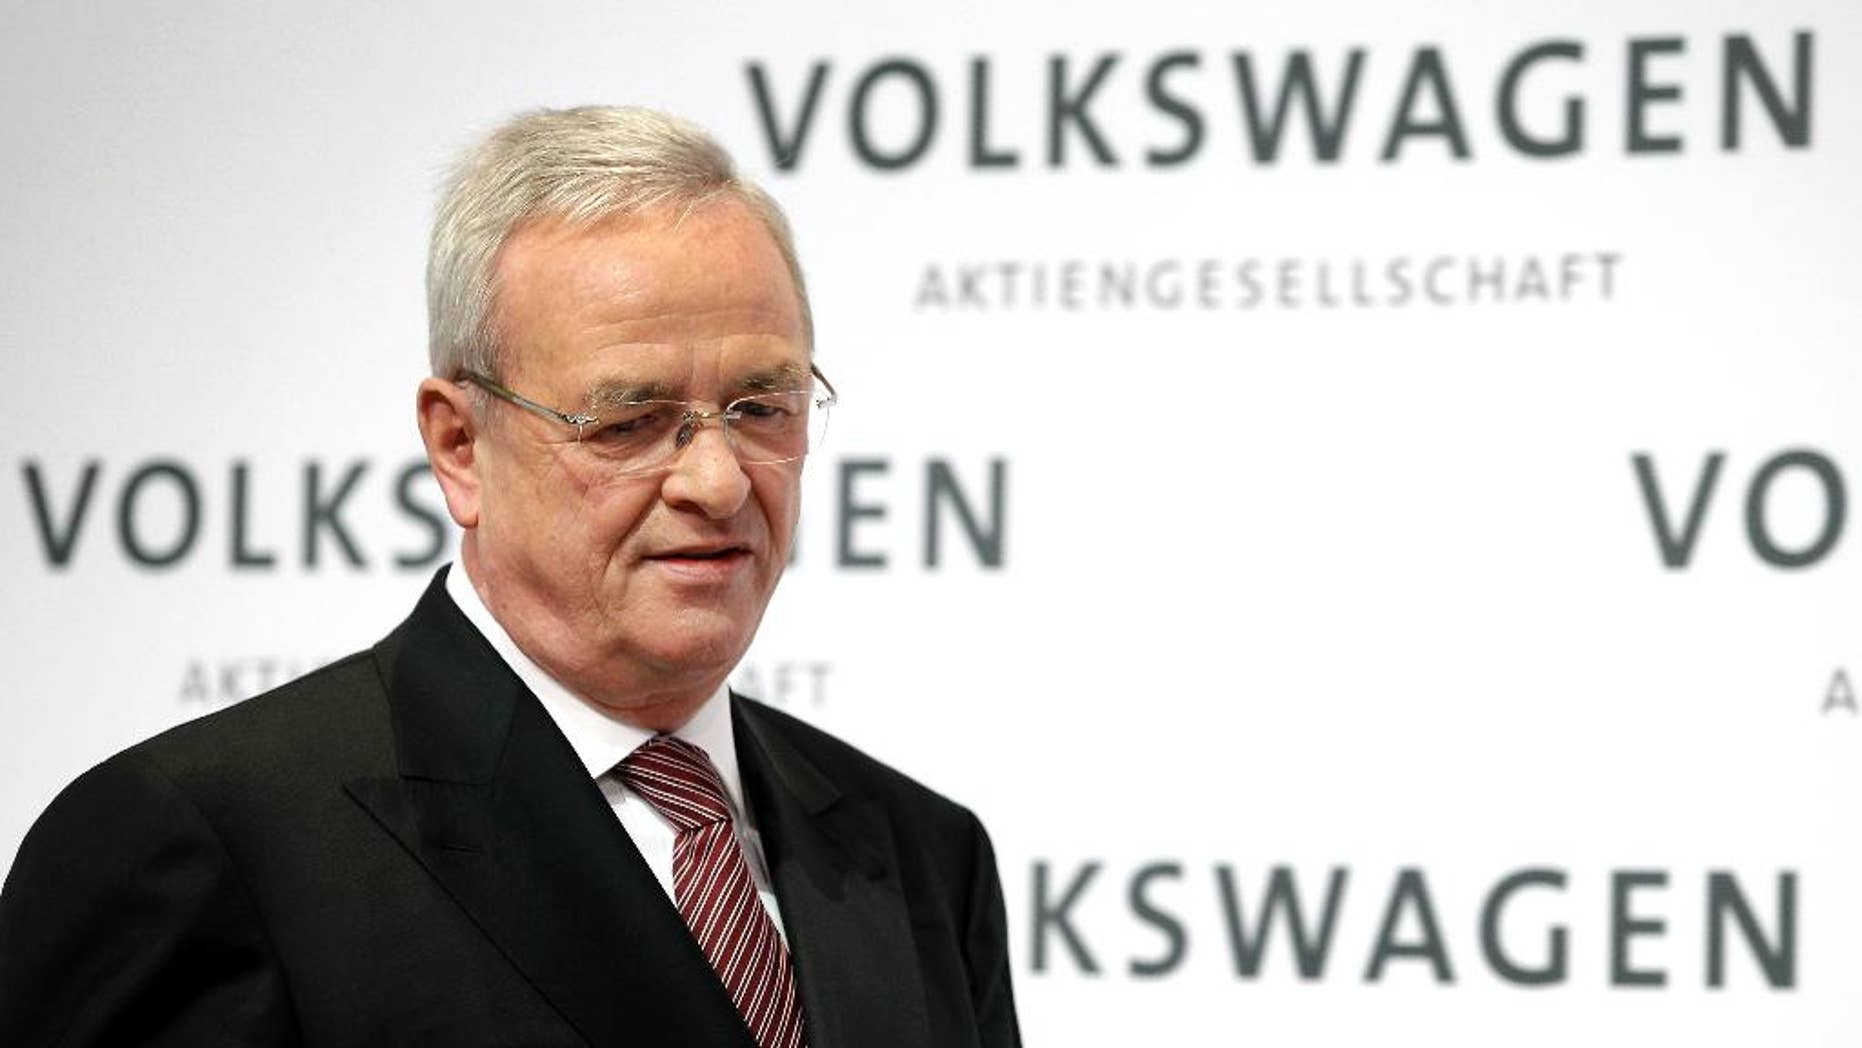 FILE - In this March 12, 2015 file picture then Volkswagen CEO Martin Winterkorn looks down as he arrives for the company's annual press conference in Berlin, Germany. Porsche Automobil Holding SE said Saturday, Oct. 17, 2015, that Winterkorn will depart as CEO and executive board member by the end of the month. (AP Photo/Michael Sohn, file)